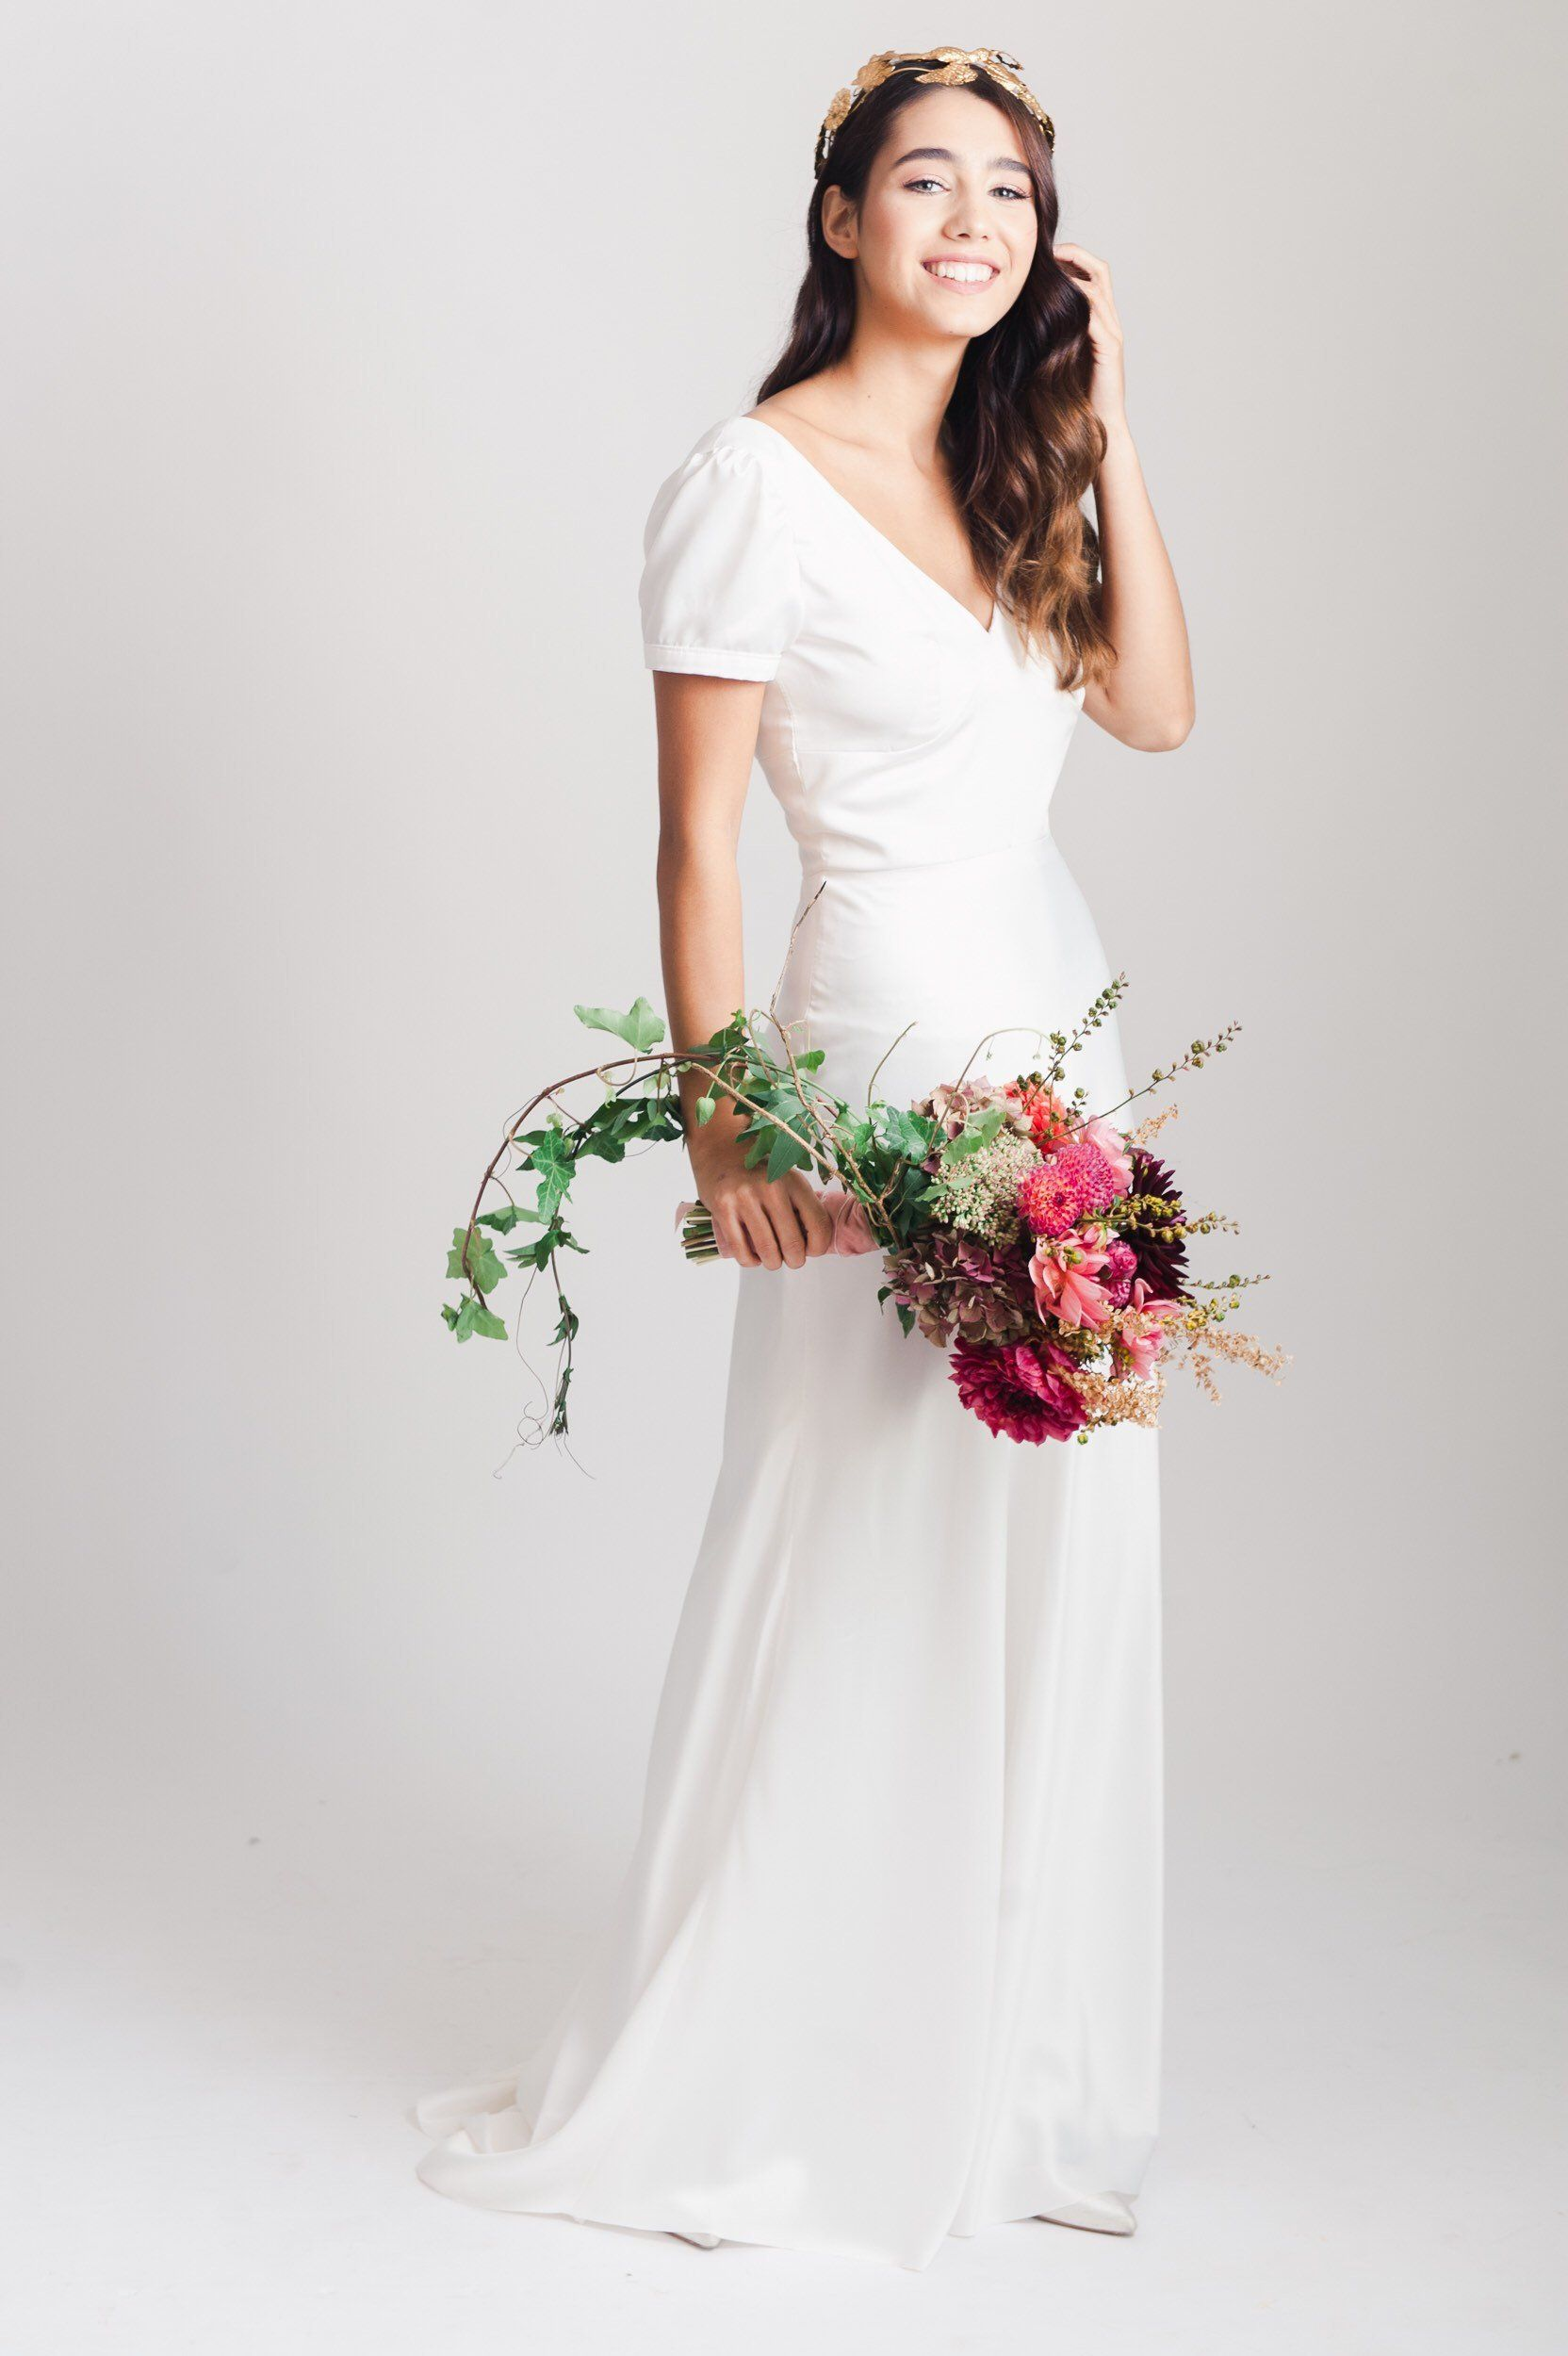 475902d3086a Stupendous Unique Ideas: Fall Wedding Dresses Boho wedding dresses fit and  flare flowy.Wedding Dresses Long Train Spaghetti Straps wedding dresses  short non ...